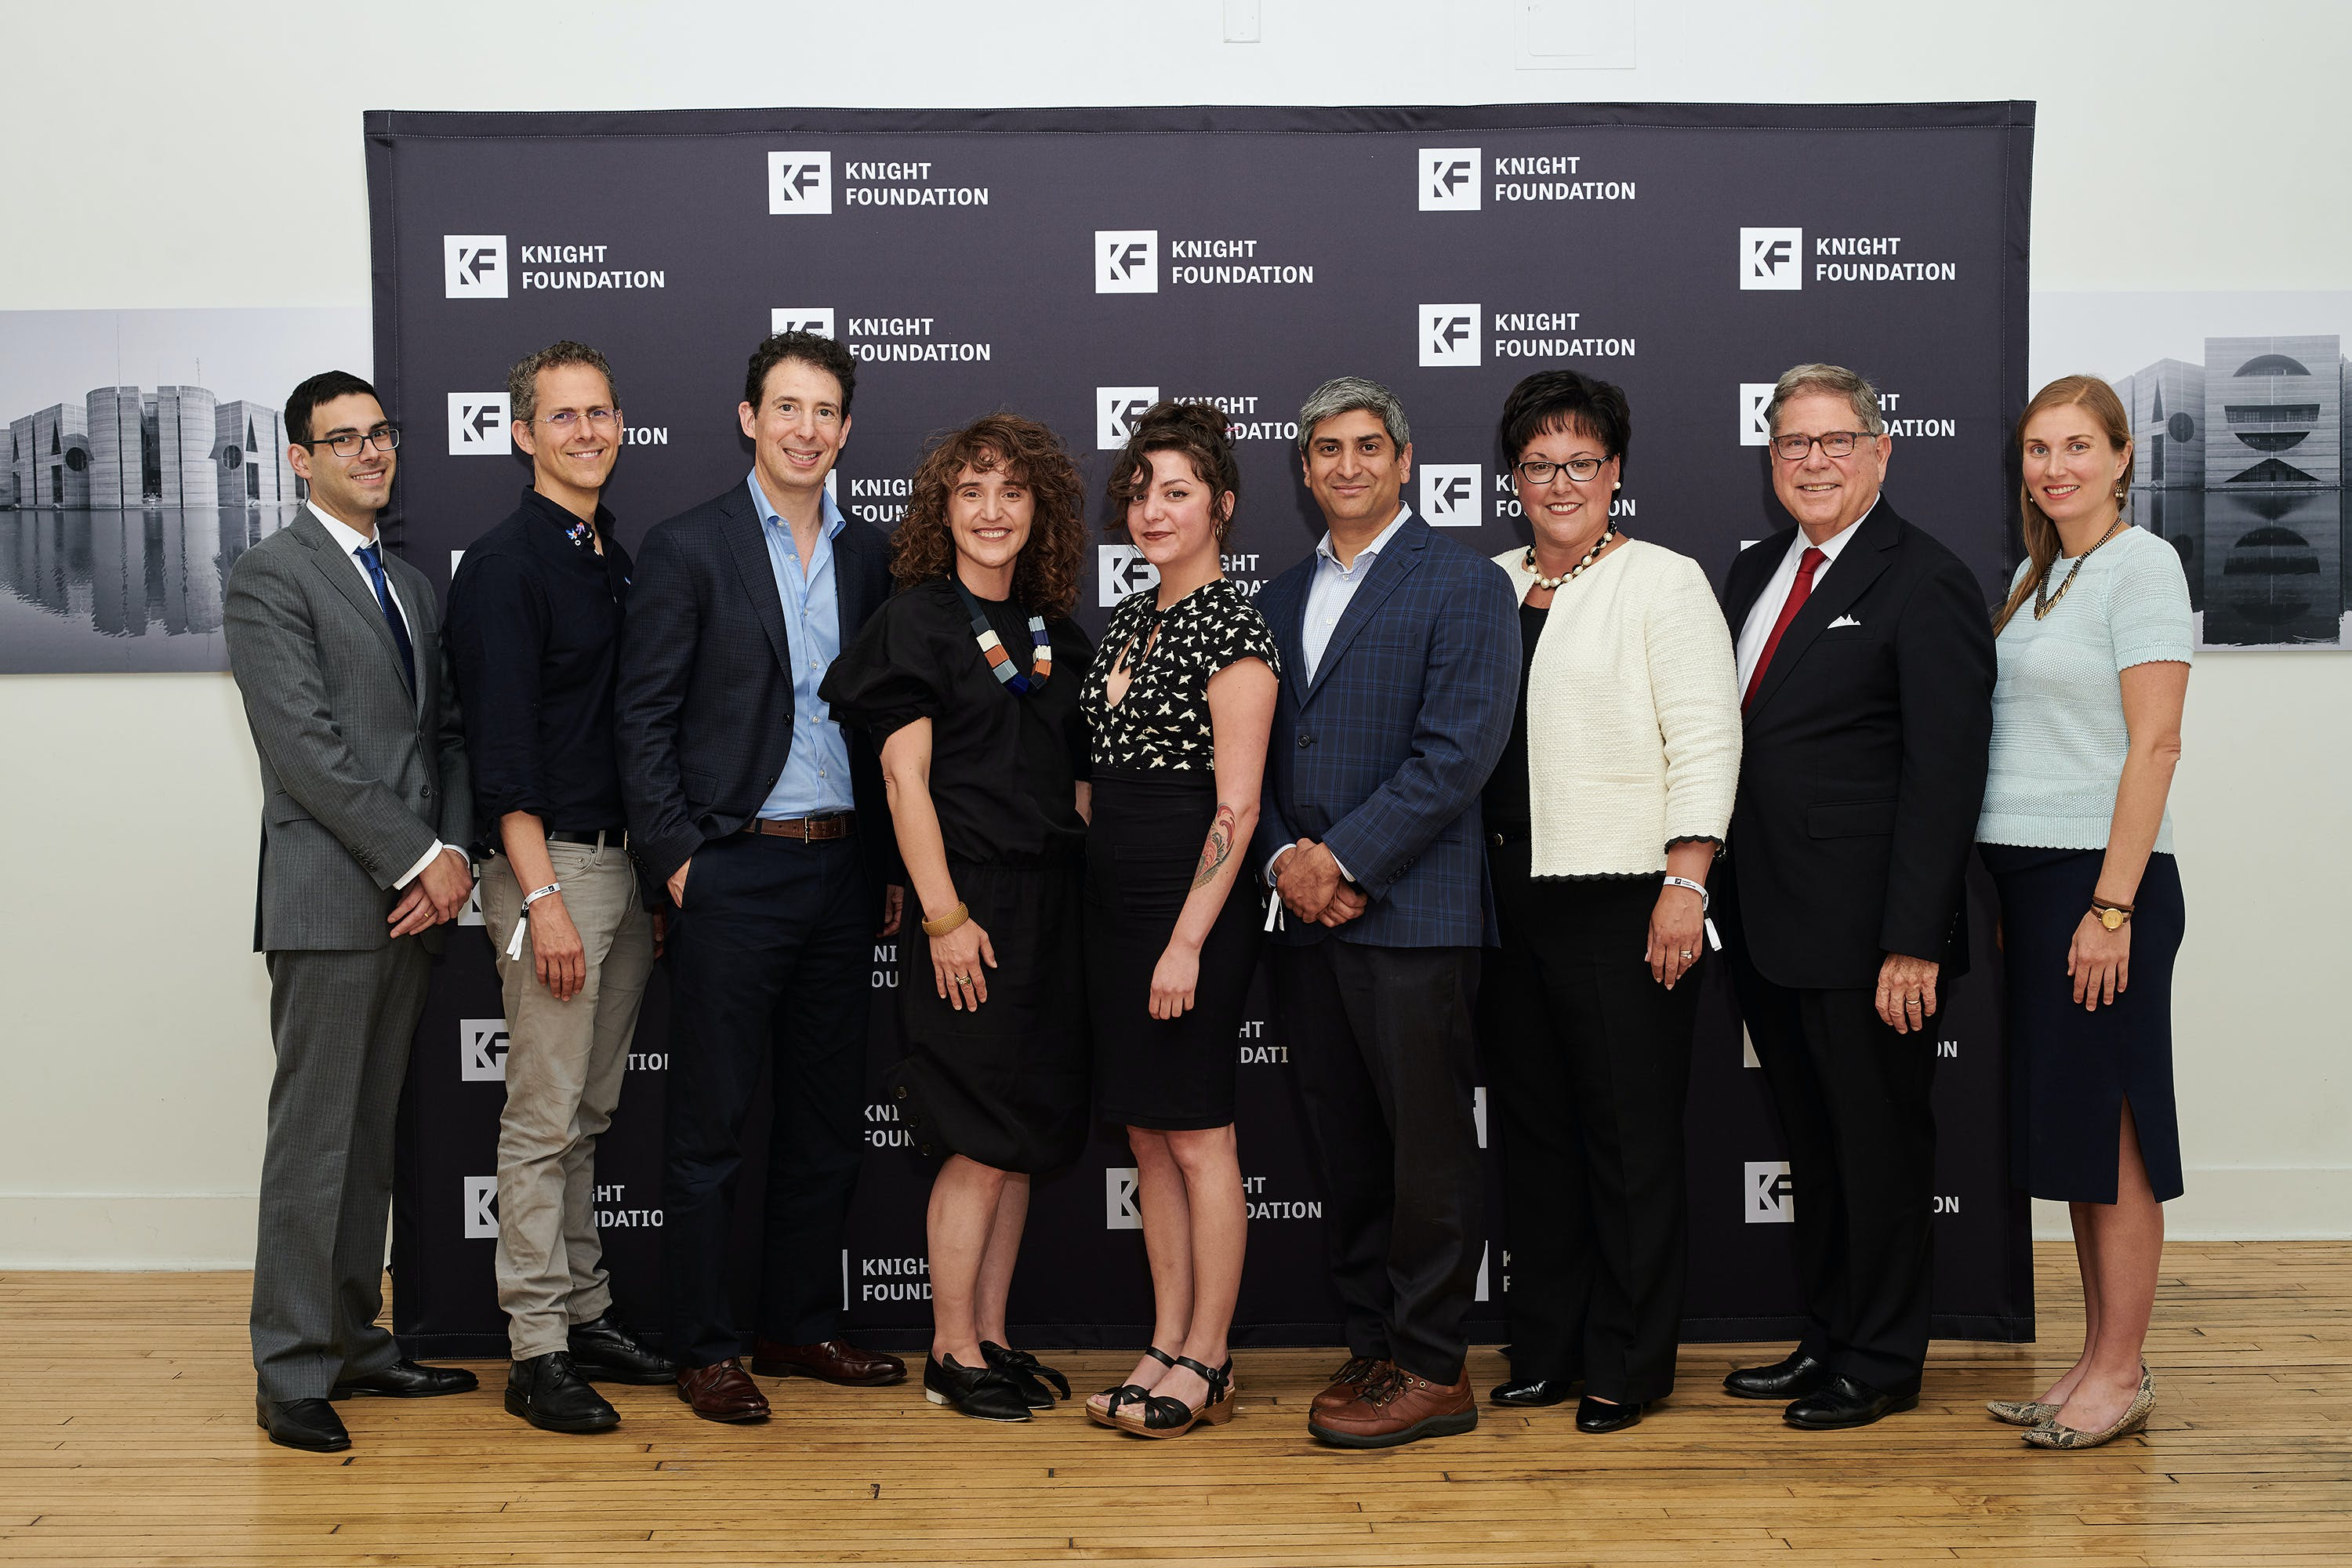 <p>The Knight Public Spaces Fellows.<strong>&nbsp;From left to right:&nbsp;</strong><strong>Sam Gill,</strong> Knight Foundation; <strong>Robert Hammond</strong>, Friends of the High Line; <strong>Eric Klinenberg</strong>, New York University; <strong>Chelina Odbert</strong>, Kounkuey Design Initiative; <strong>Erin Salazar</strong>, Exhibition District; <strong>Anuj Gupta</strong>, Reading Terminal Market; <strong>Kathryn Ott Lovell</strong>, Philadelphia Parks and Recreation; <strong>Alberto Ibarg&uuml;en</strong>, Knight Foundation;<strong>&nbsp;Lilly Weinberg</strong>, Knight Foundation. (<em>Not pictured: <strong>Walter Hood,</strong> Hood Design.)&nbsp;</em> <strong>Credit:&nbsp;</strong>Albert Yee.&nbsp;</p>